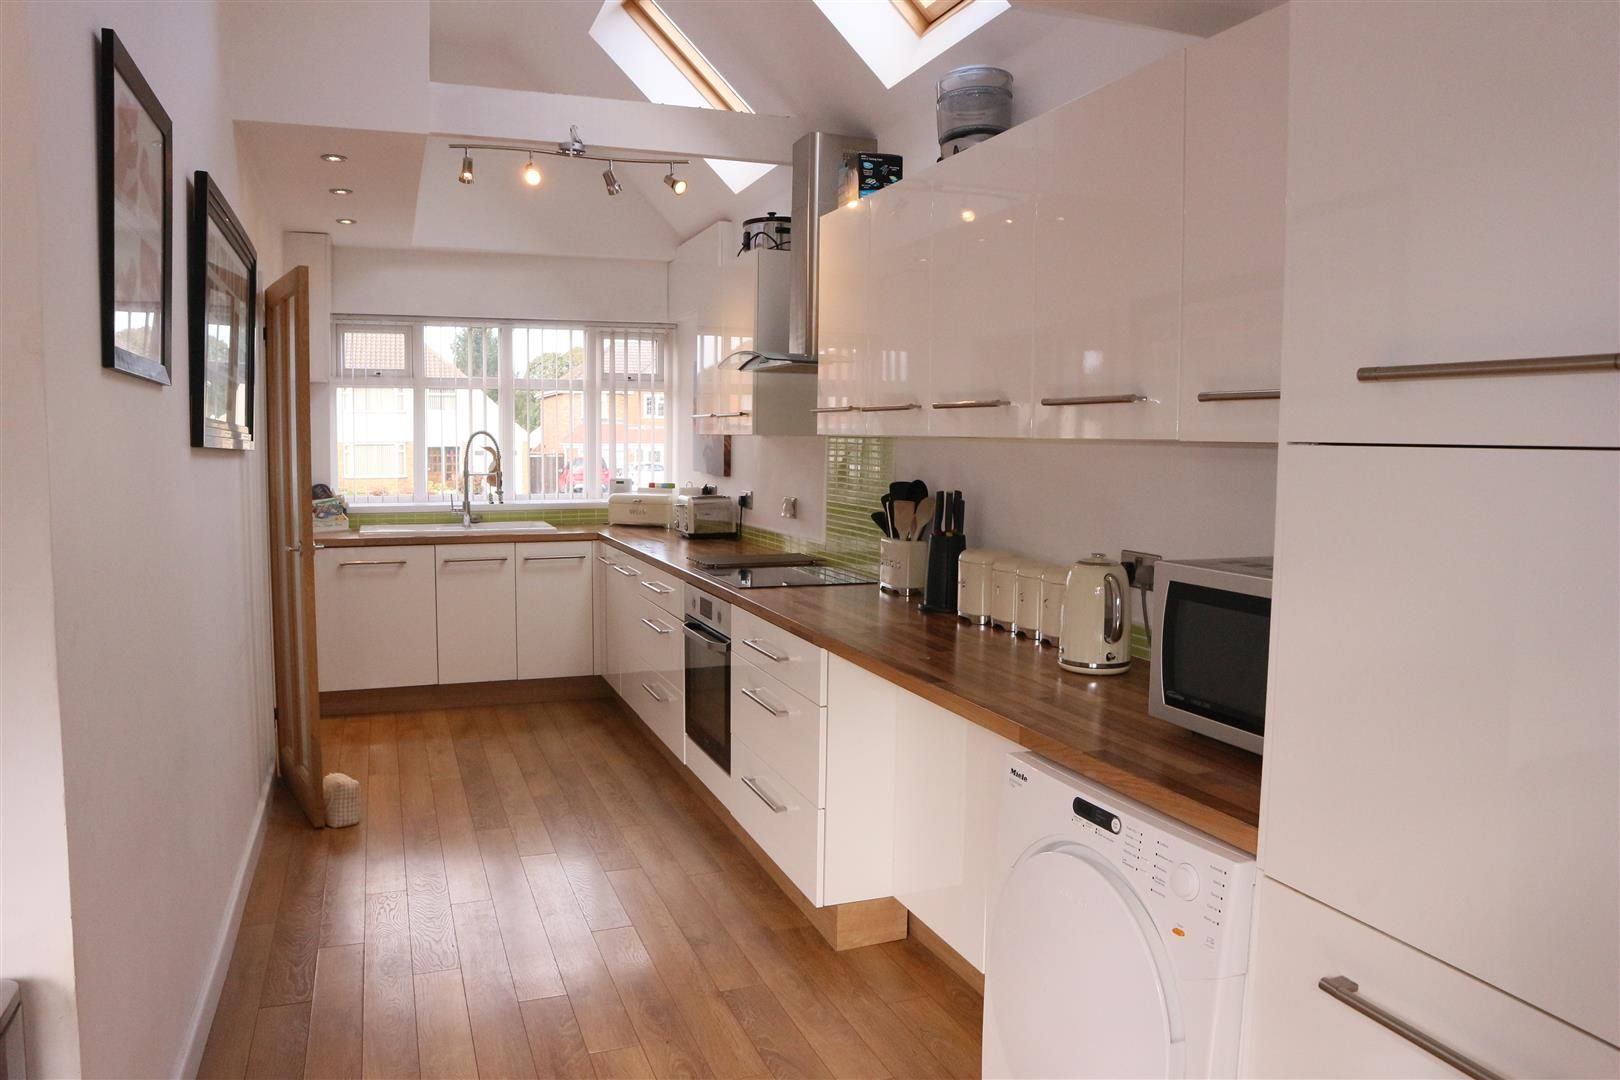 3 bed semi-detached for sale in Pedmore 3